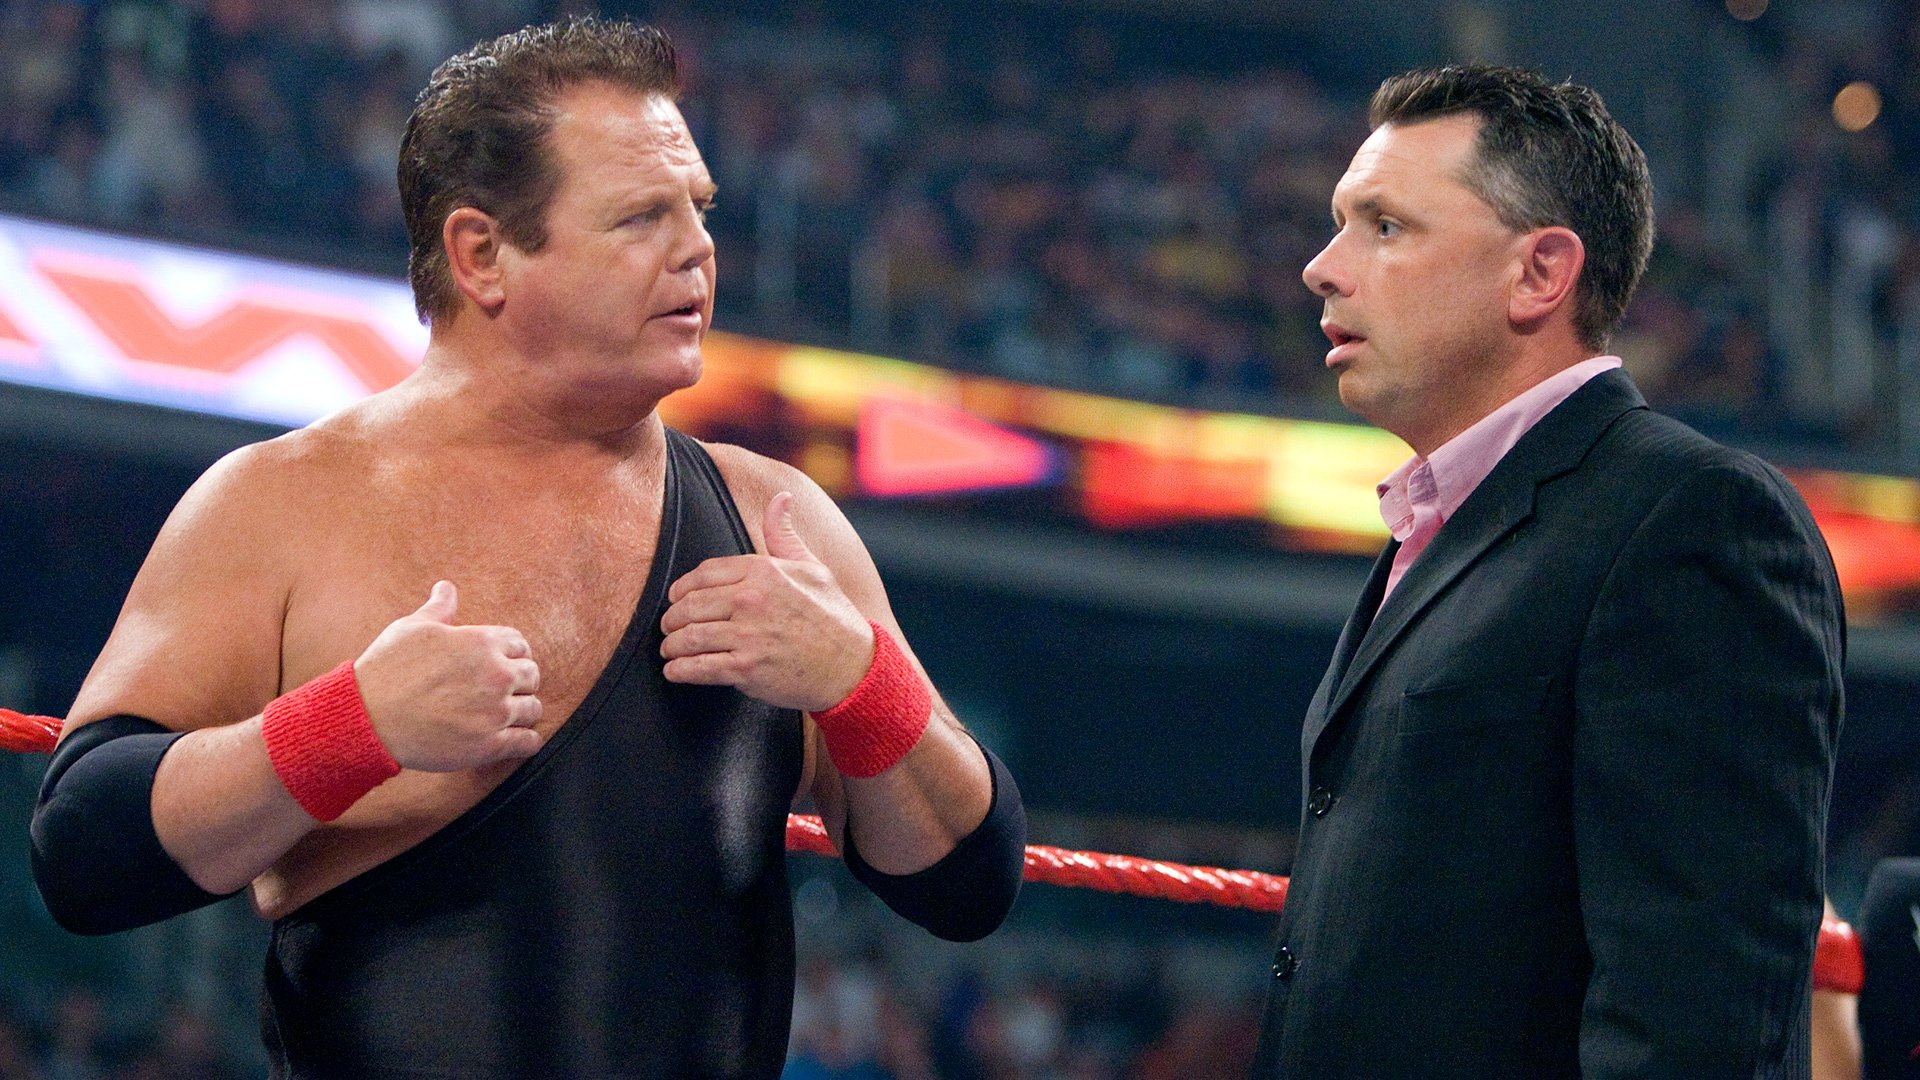 b1bce5d0ce2d Jerry Lawler & Michael Cole vs. The Legacy - World Tag Team Championship  Match: Raw, July 28, 2008